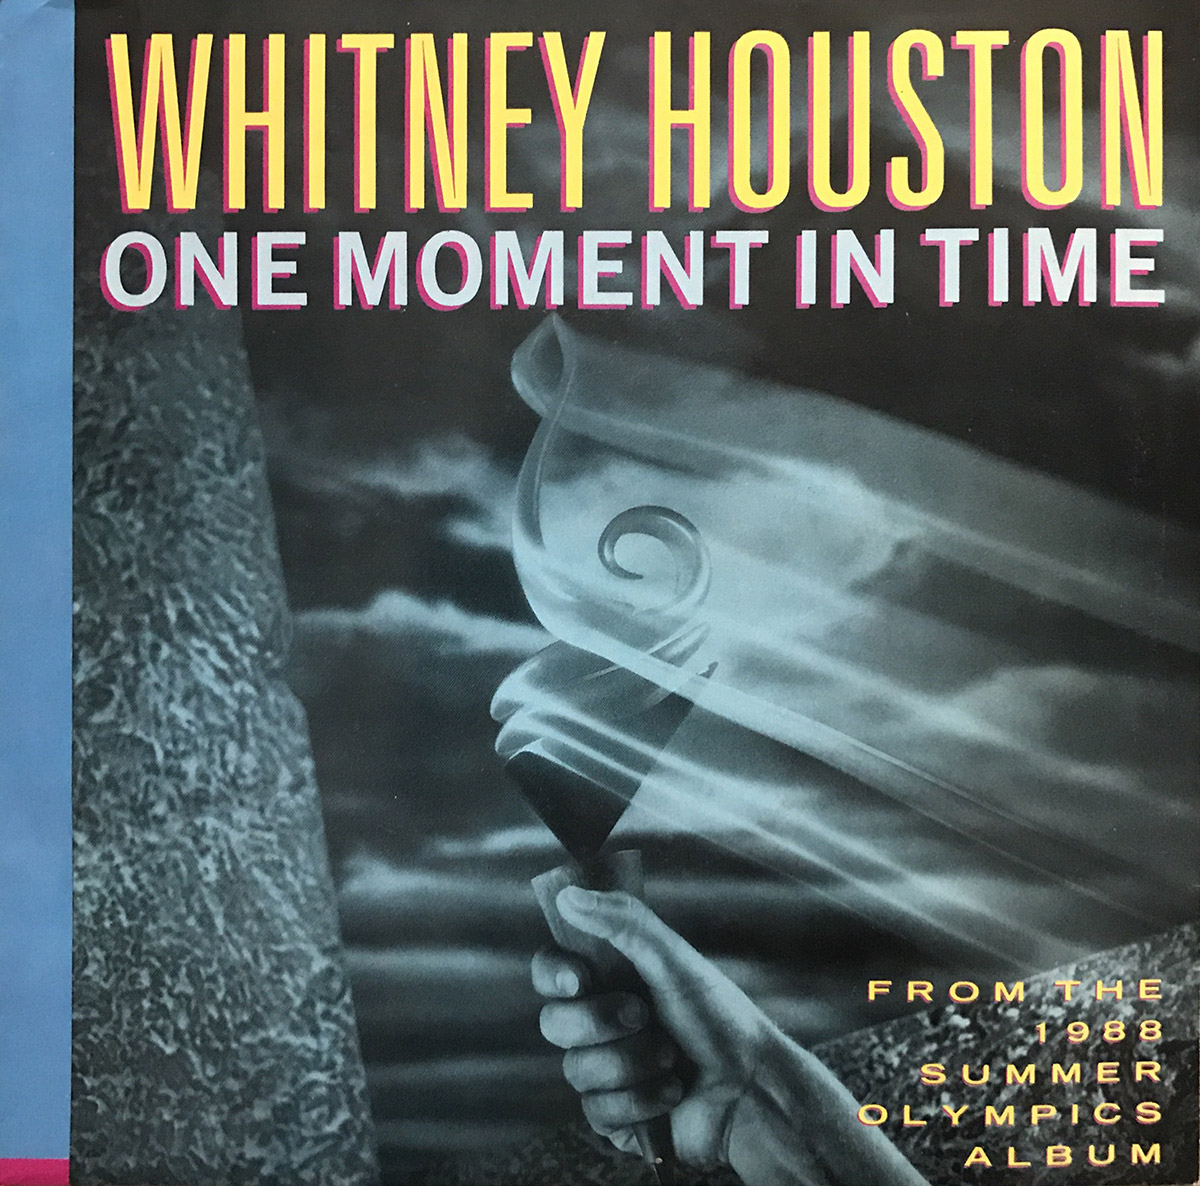 Whitney Houston - One Moment In Time U.S. 7-inch vinyl single front cover